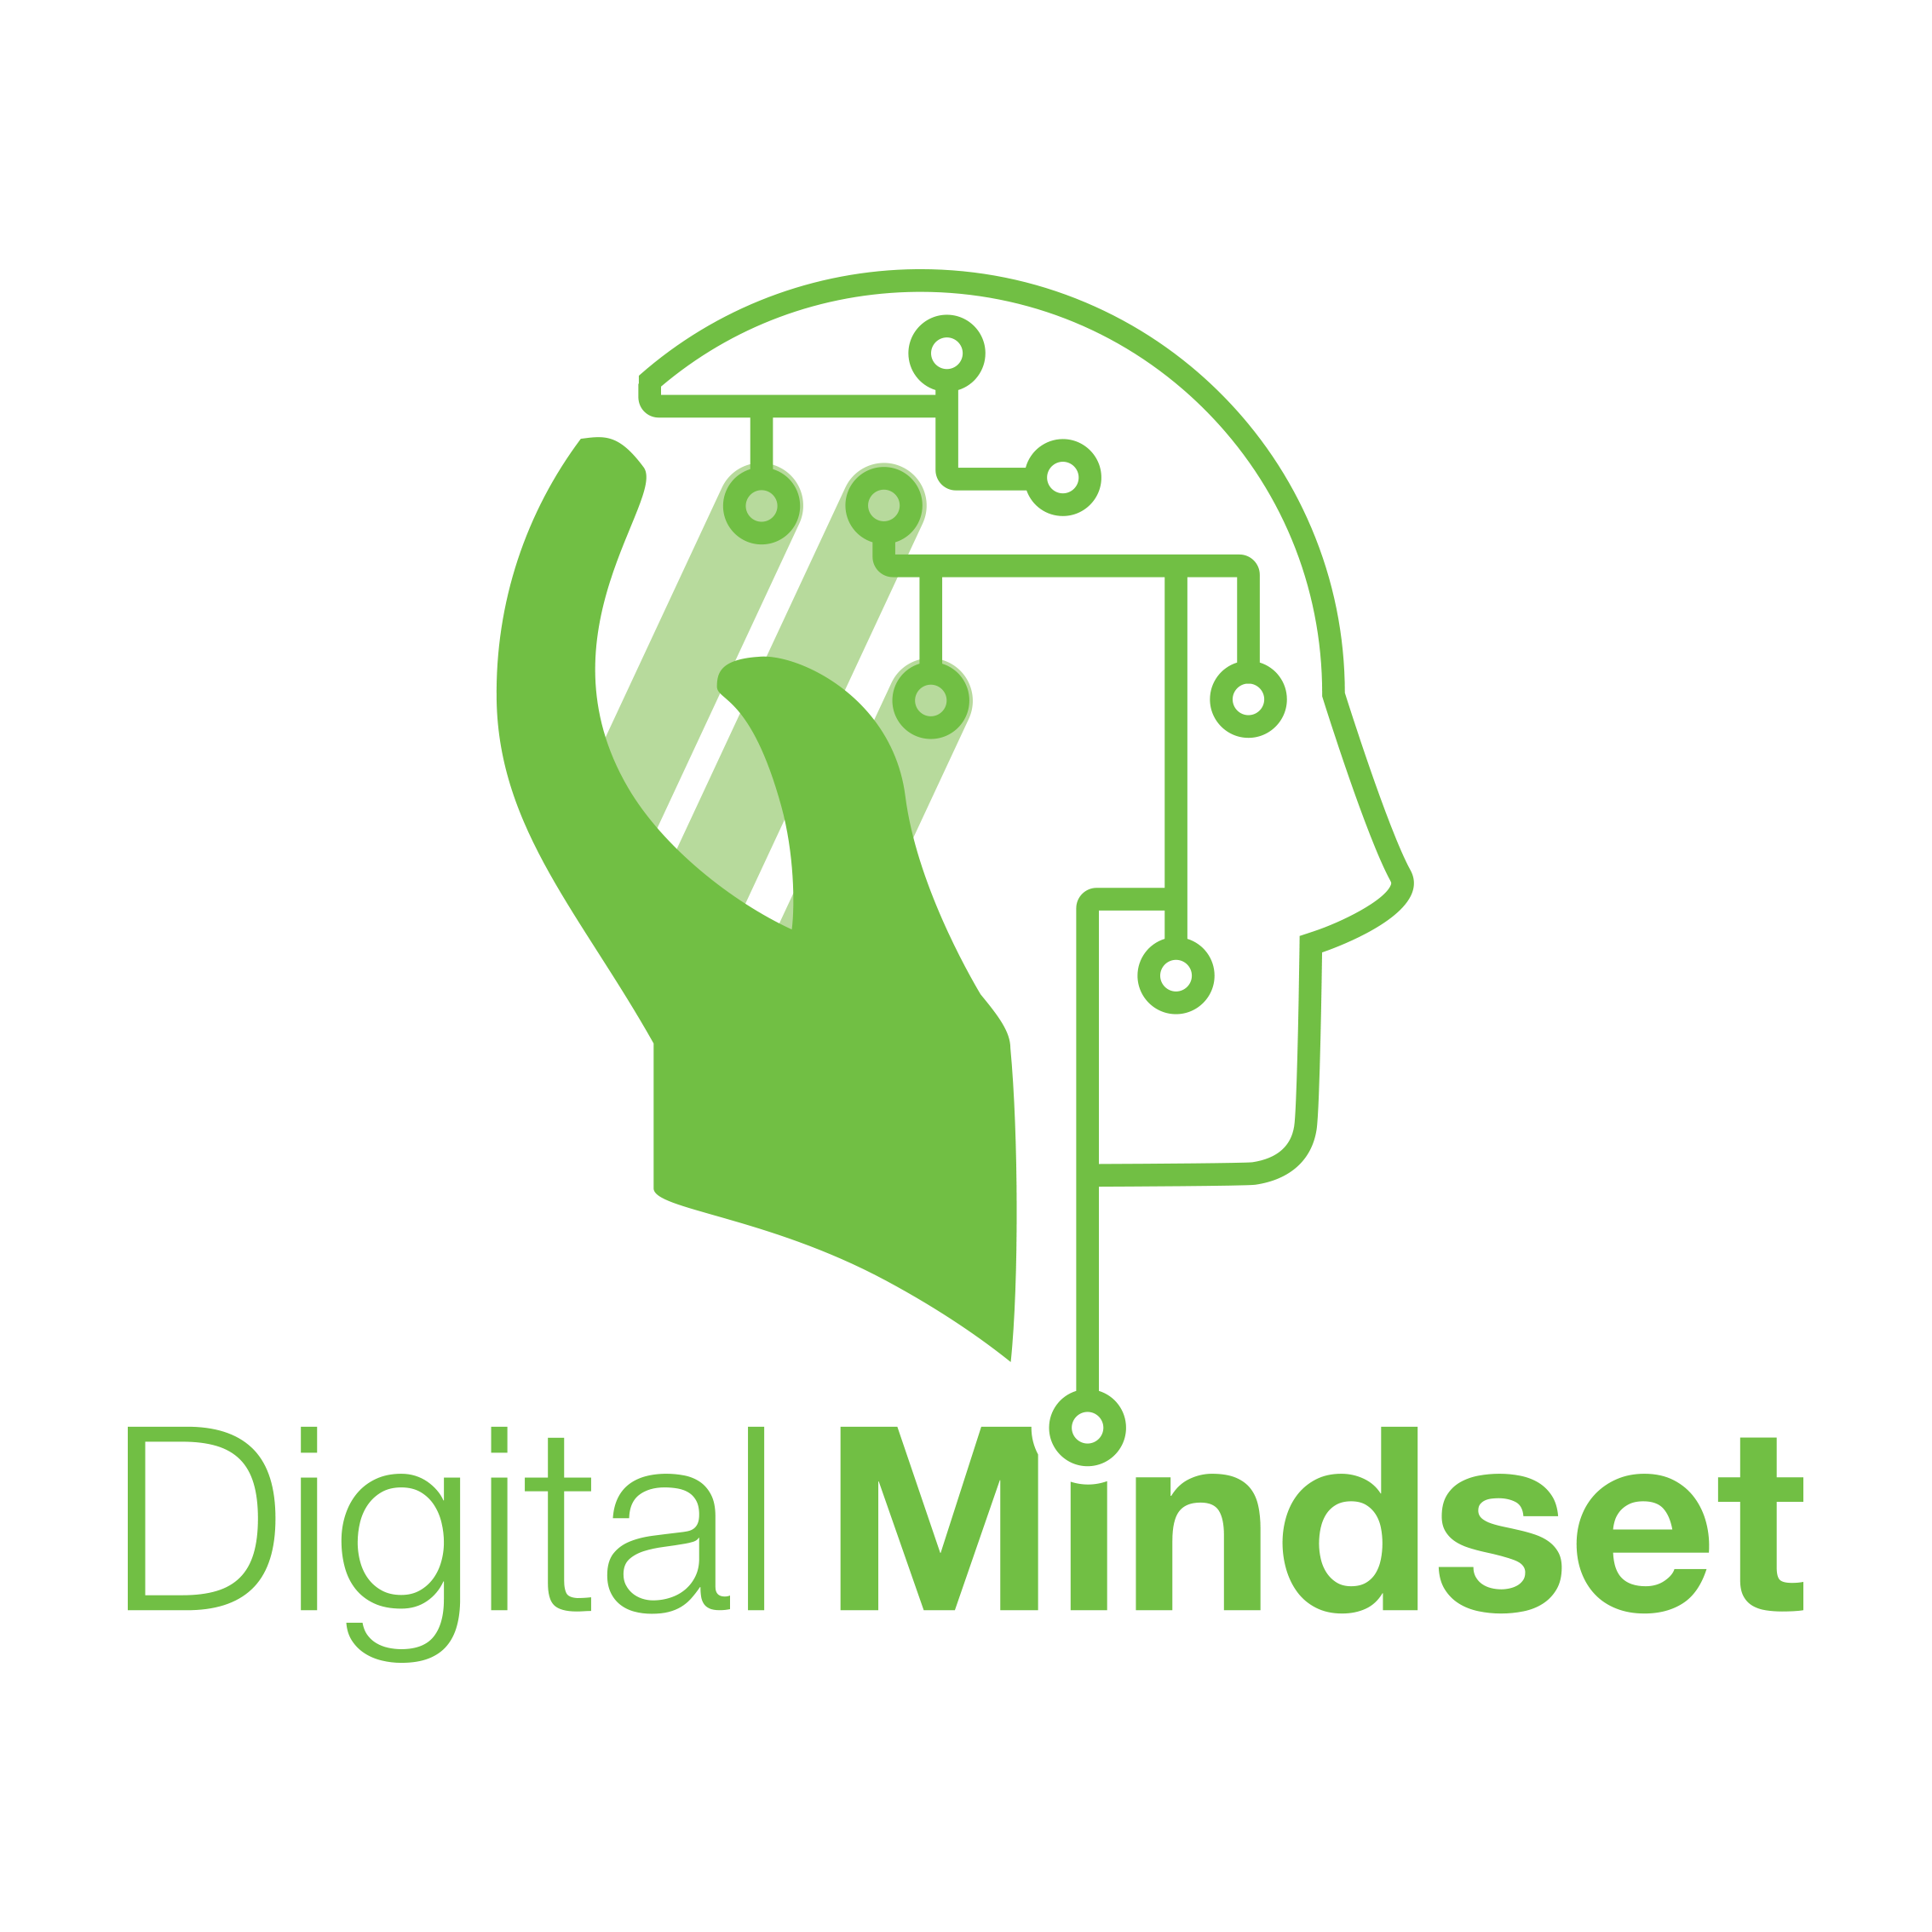 Digital Mindset GmbH